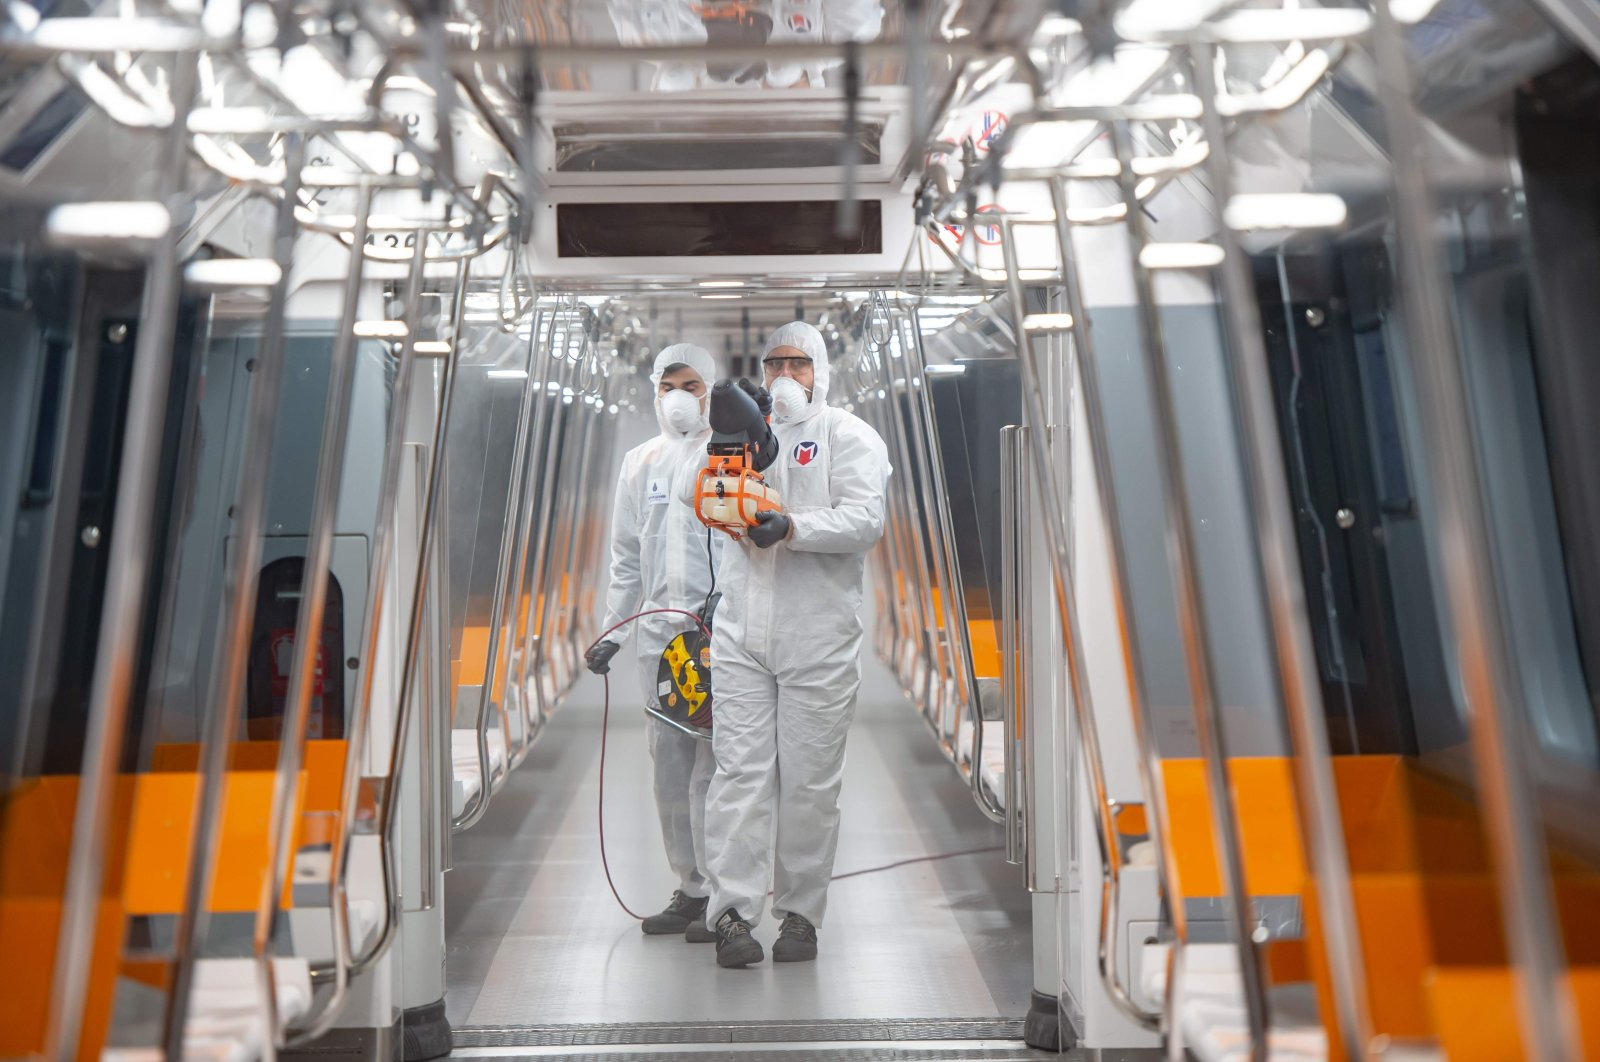 Employees of the Istanbul Municipality wearing protective gear disinfects a subway carriage to prevent the spread of the COVID-19 in Istanbul, March 12, 2020. (AFP Photo)